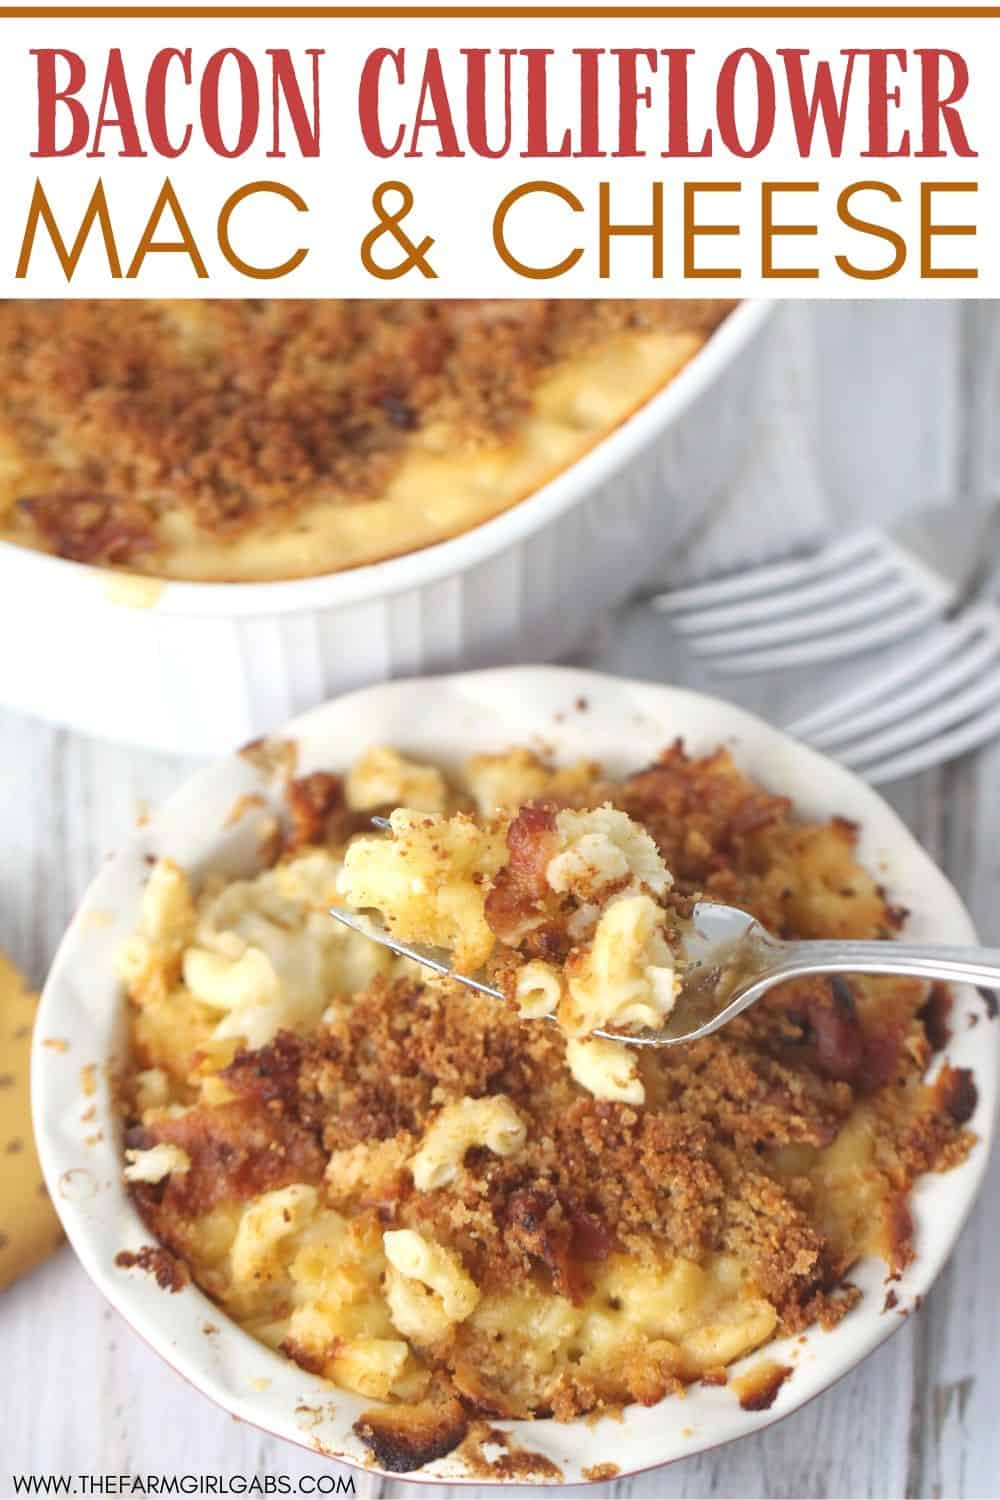 Bacon Cauliflower Macaroni and Cheese is the ultimate comfort food. Creamy macaroni and cheese are mixed with flavorful bacon and farm fresh cauliflower.